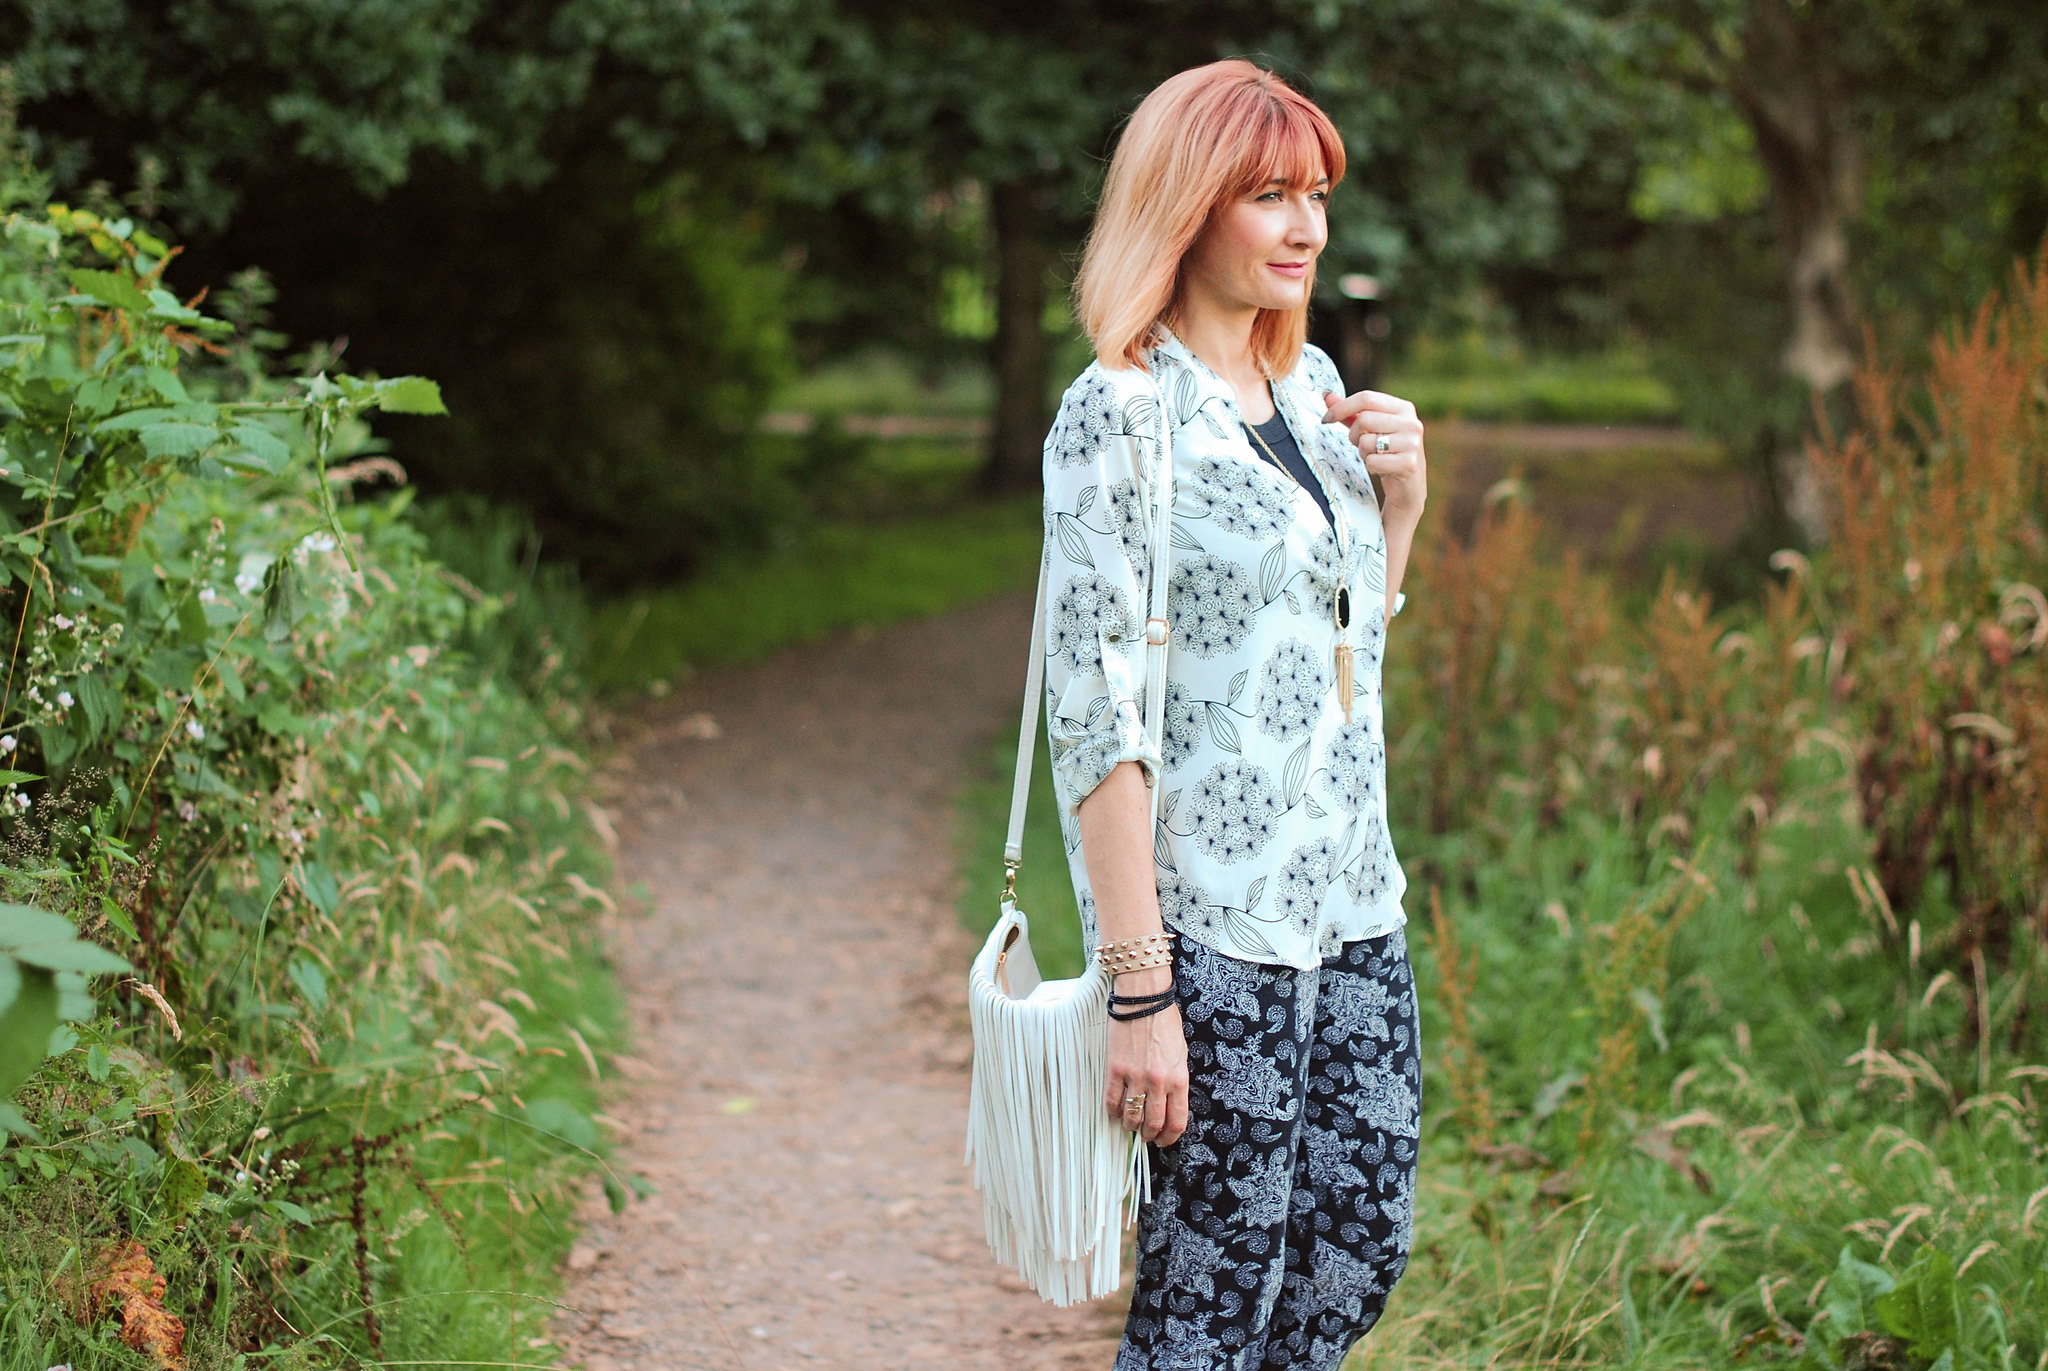 Black and white pattern mixing for summer: Dandelion flower print and paisley, red strappy sandals, fringed bag | Not Dressed As Lamb